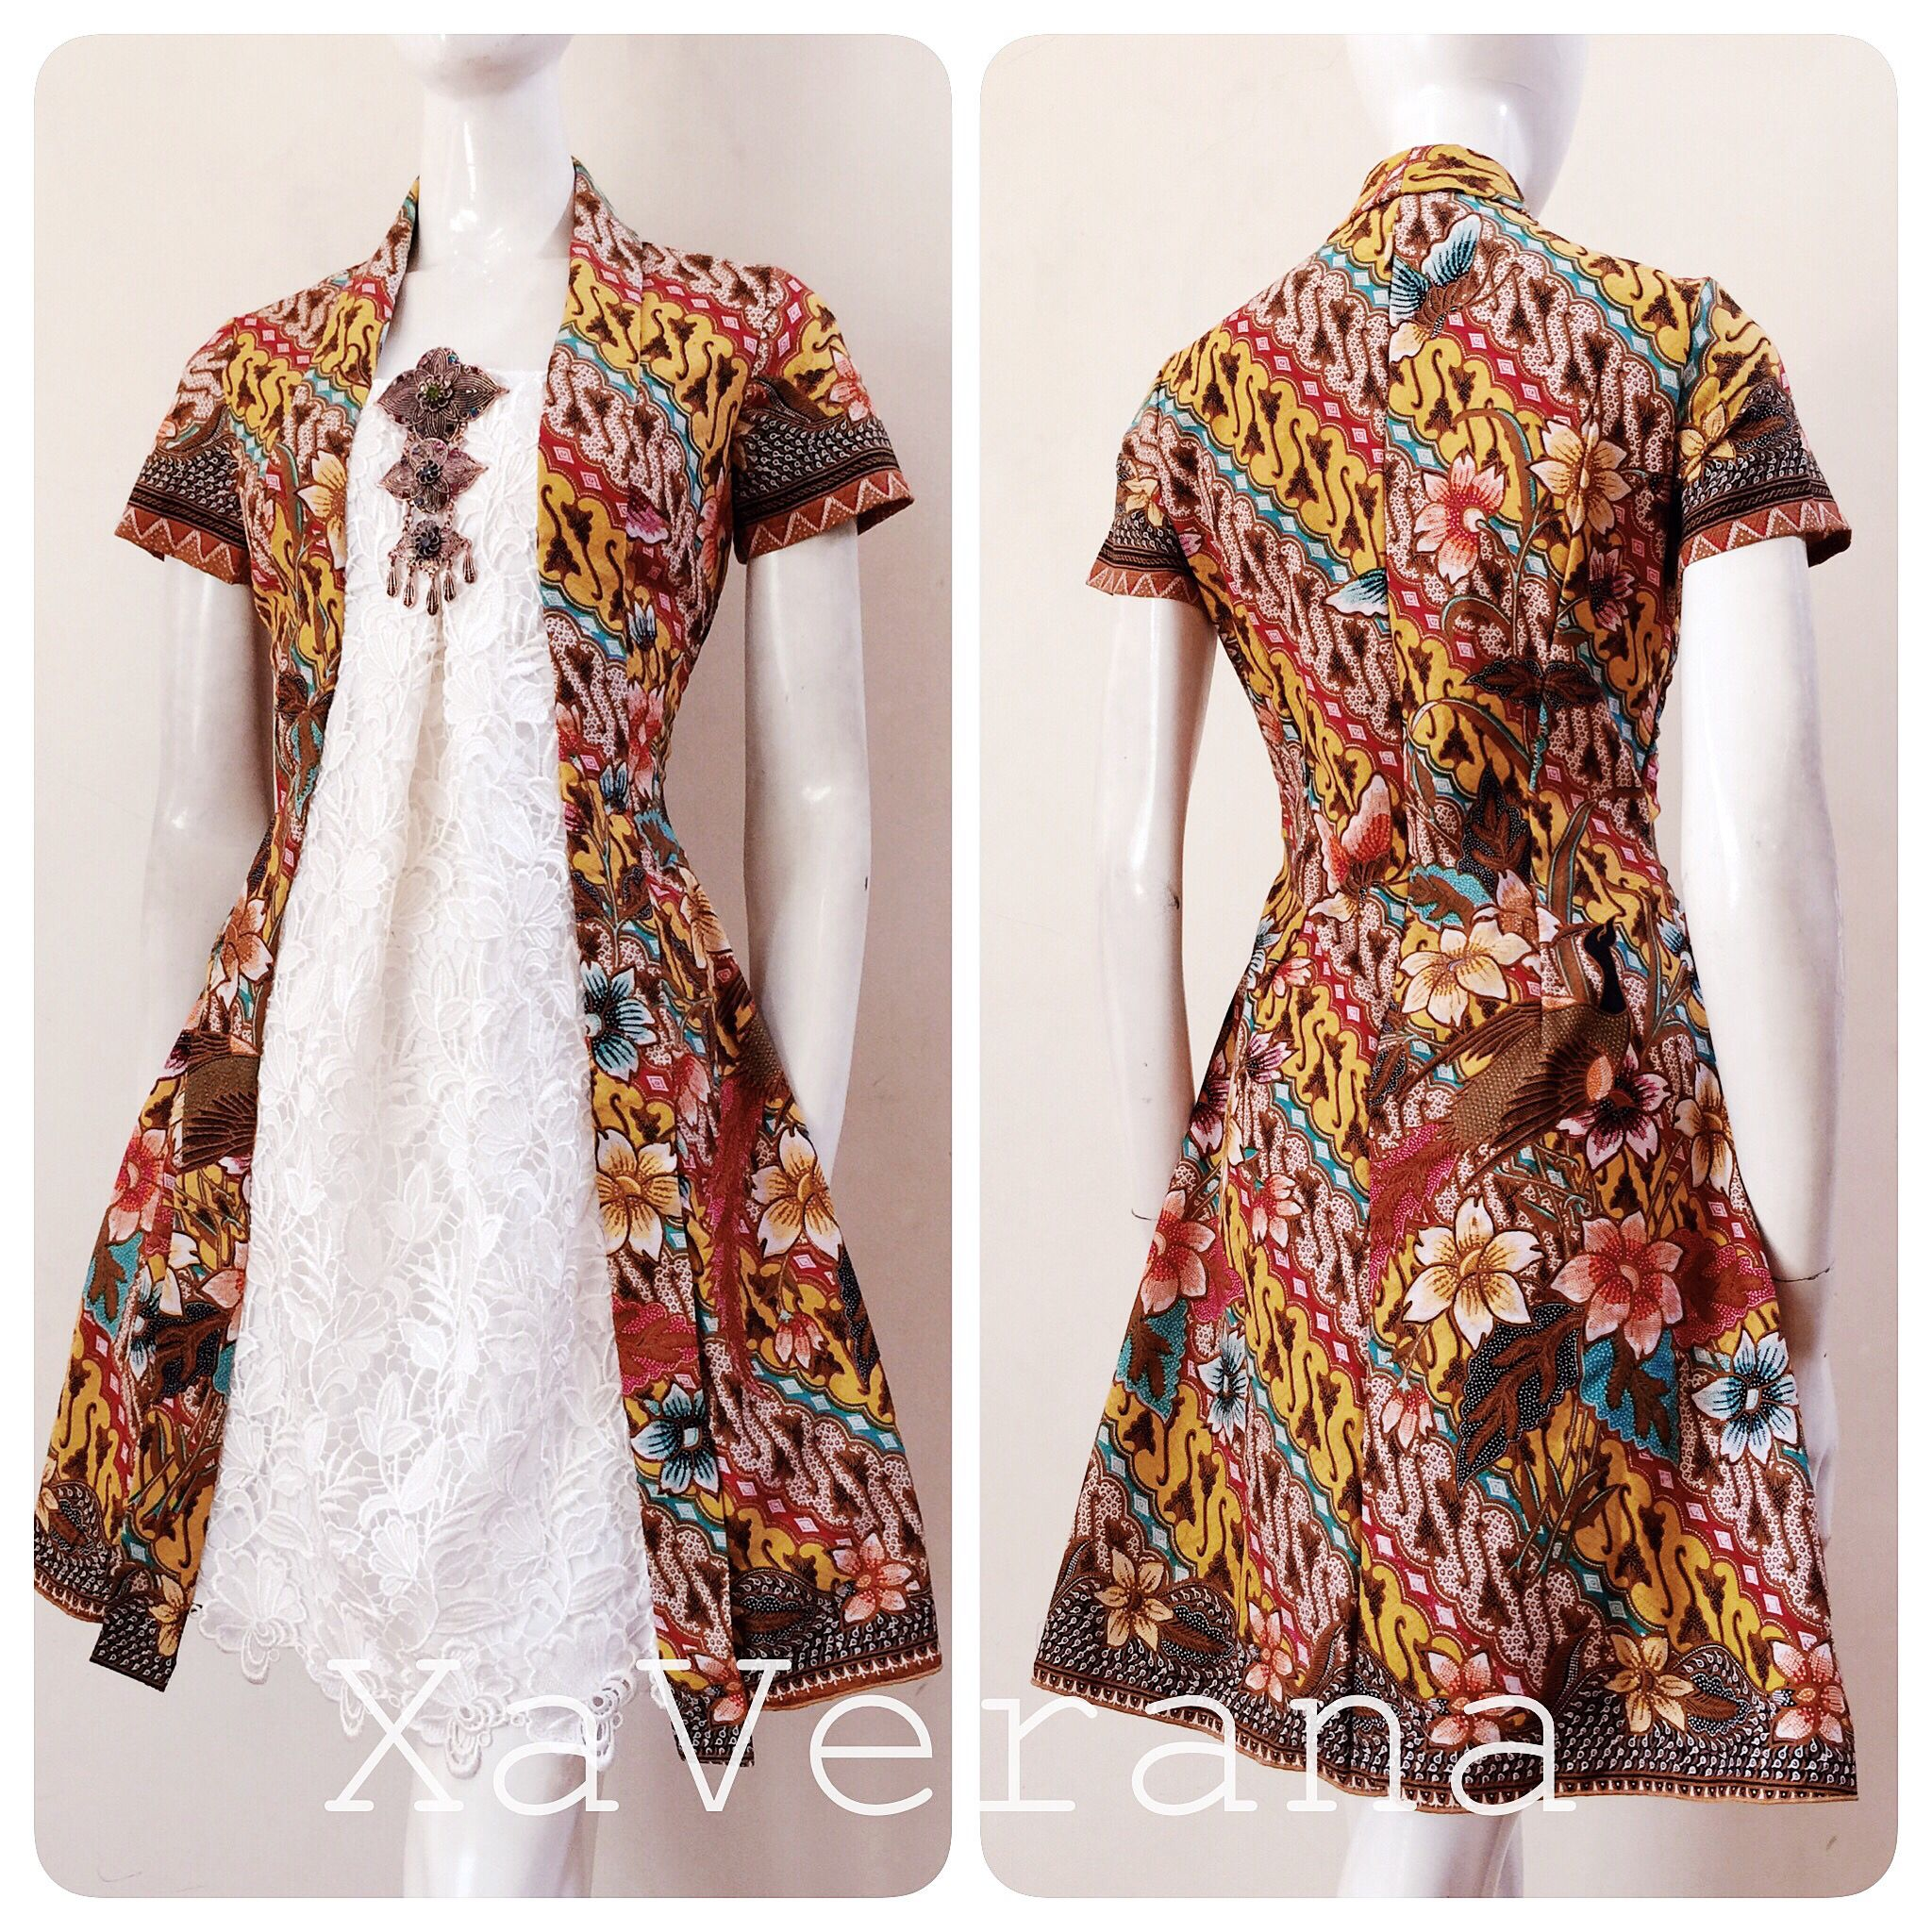 Kebaya kutubaru dress Instagram  xaverana Kebaya Dress 13634f03e8